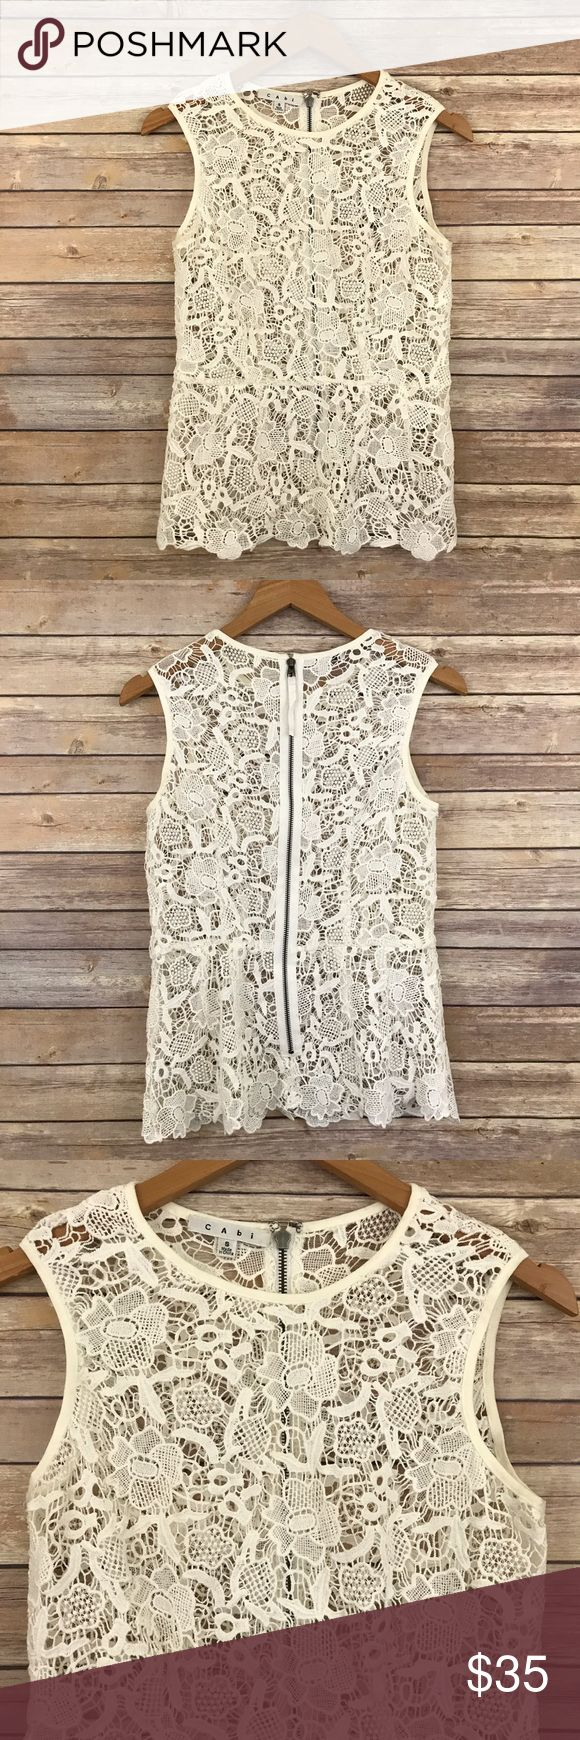 CAbi Ivory Floral Lace Peplum Top #800 S B1 Bust: Waist: Length:  Back exposed zipper   Condition: No Rips; No Stains    📦Orders are shipped within 24hrs! {Except weekends}📦  🚫No Trades🚫No Holds🚫 CAbi Tops Blouses